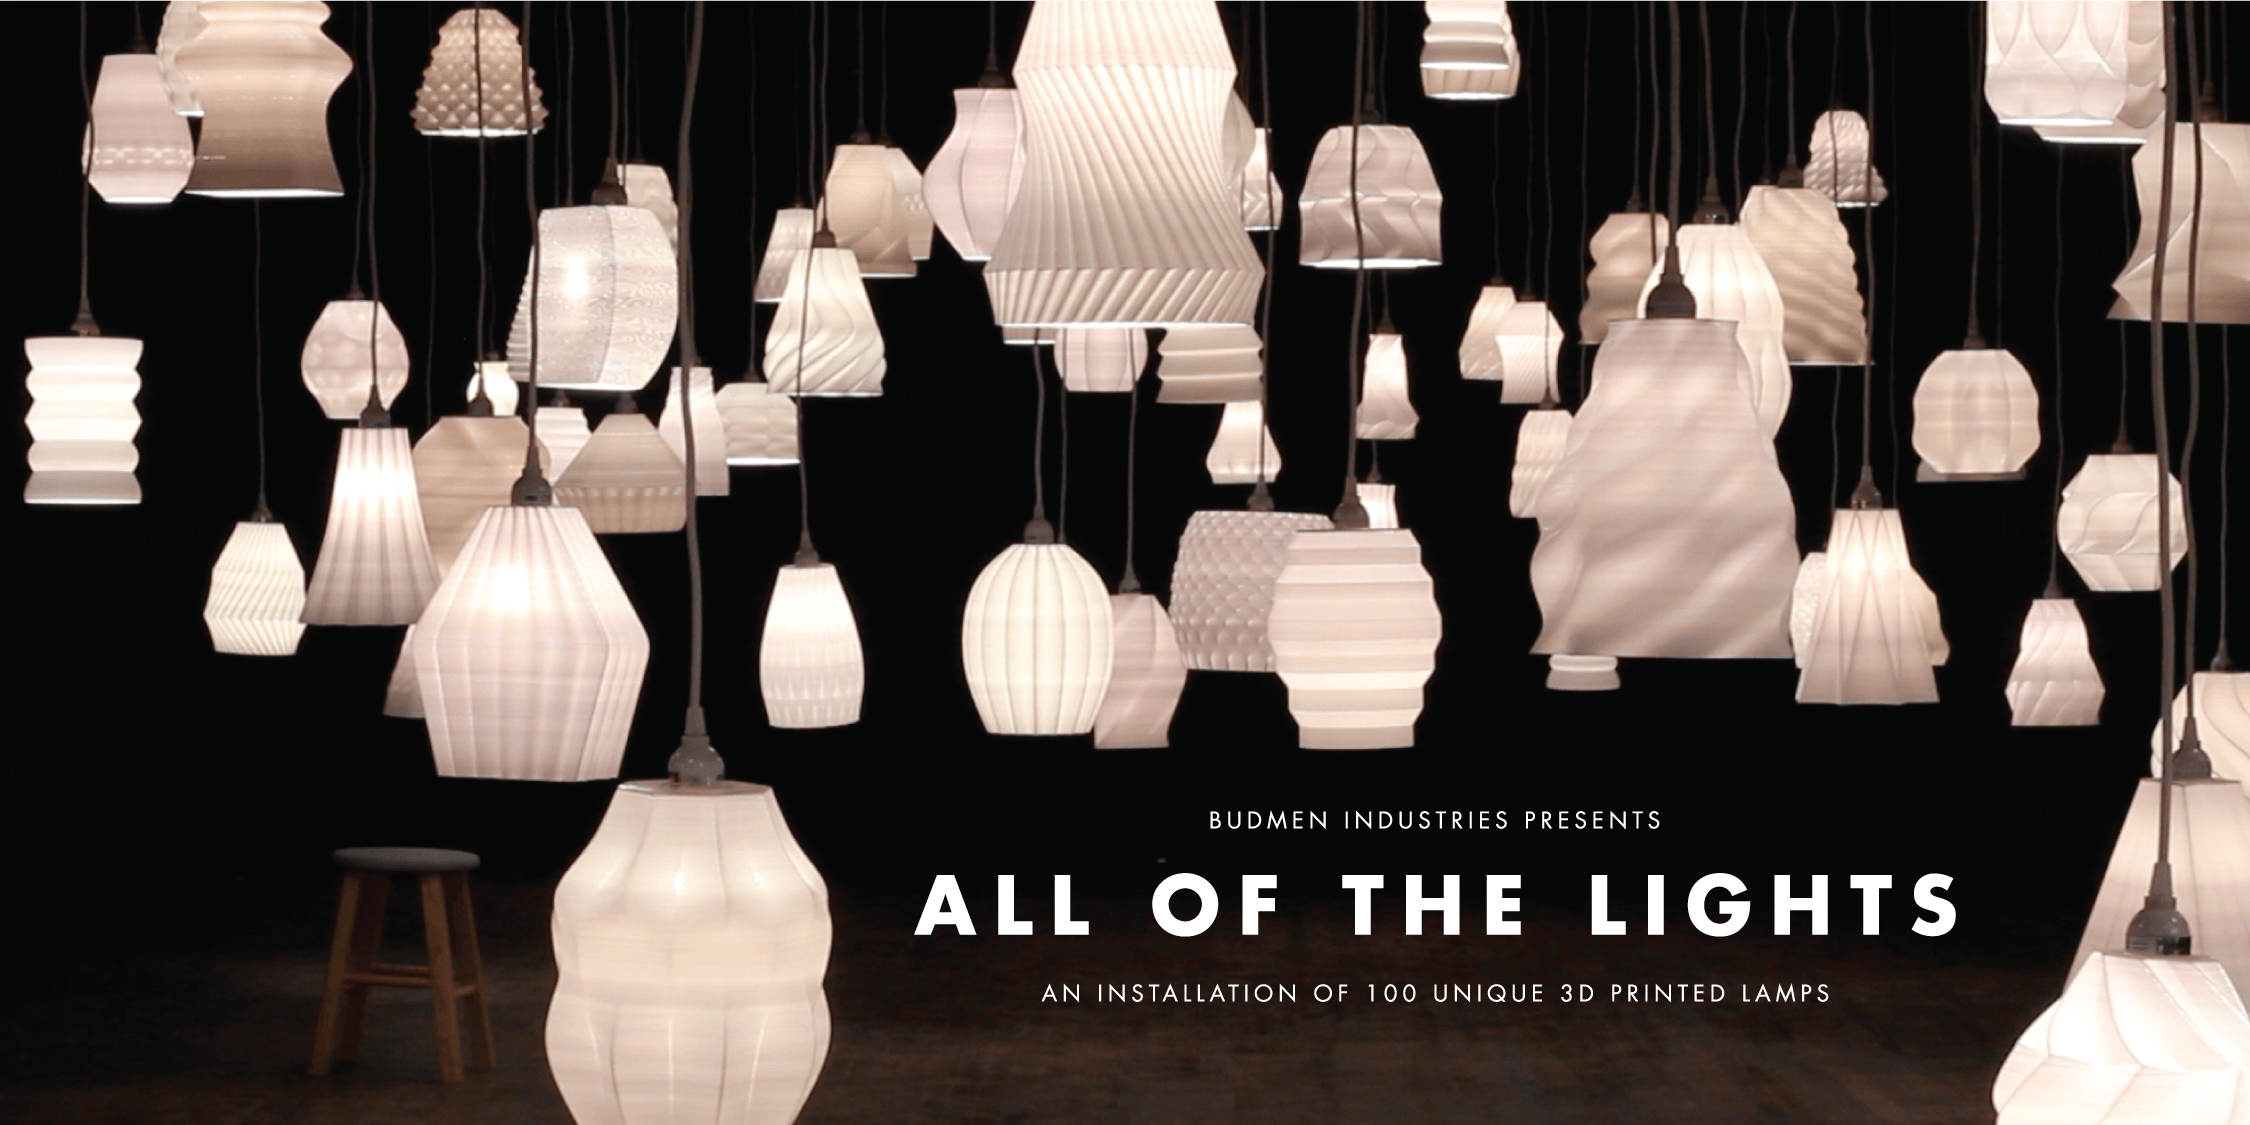 All of the Lights Installation